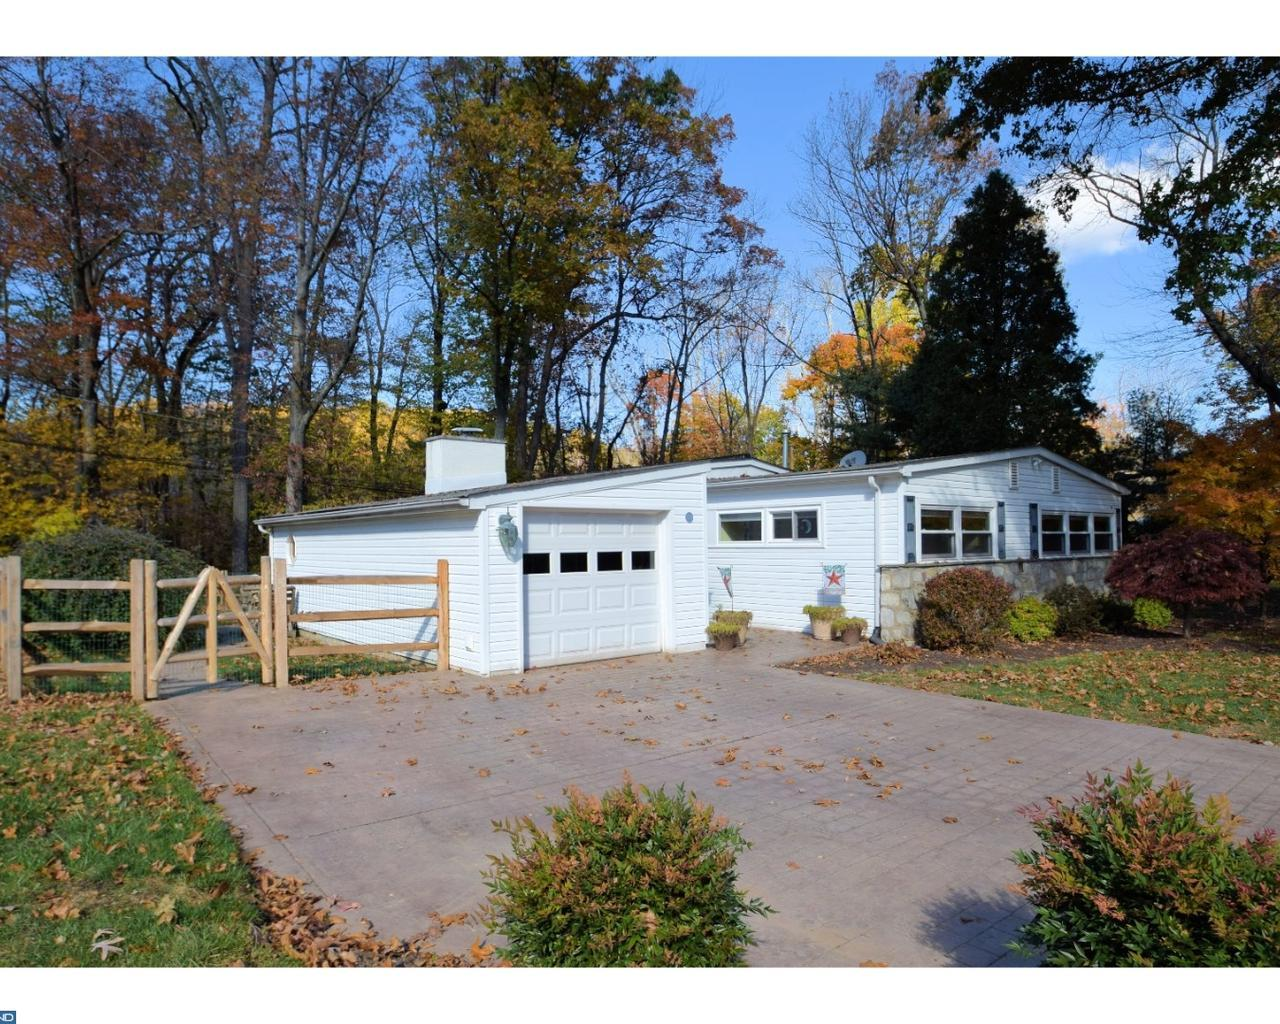 481 greystone rd ambler pa 19002 estimate and home details